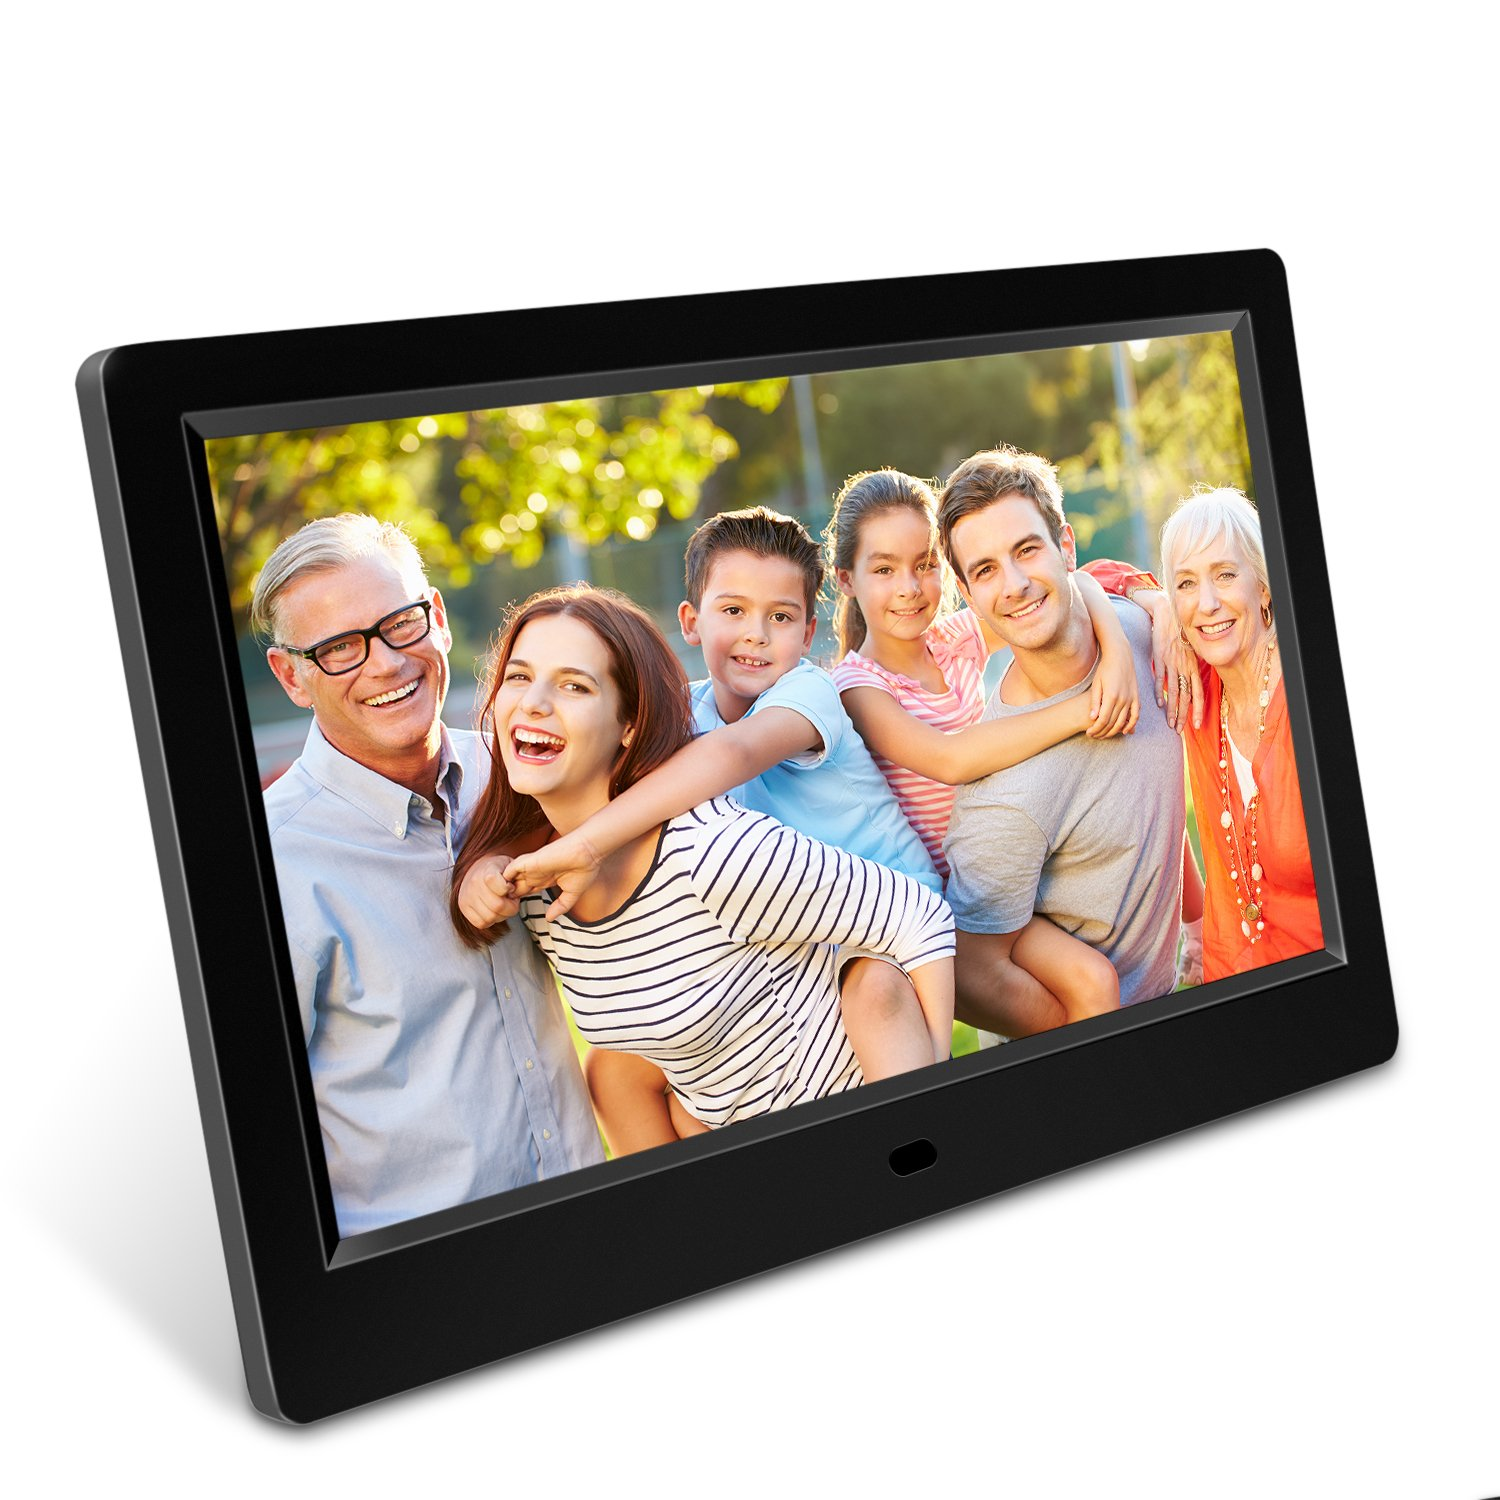 Dooreemee Digital Photo Frame 10.1 inch Widescreen Remote Control with 1080P HD, IPS Display, LCD Screen, The Eletronic Picture Frame Built-in with Calendar/Alarm Function, MP3/Photo/Vid